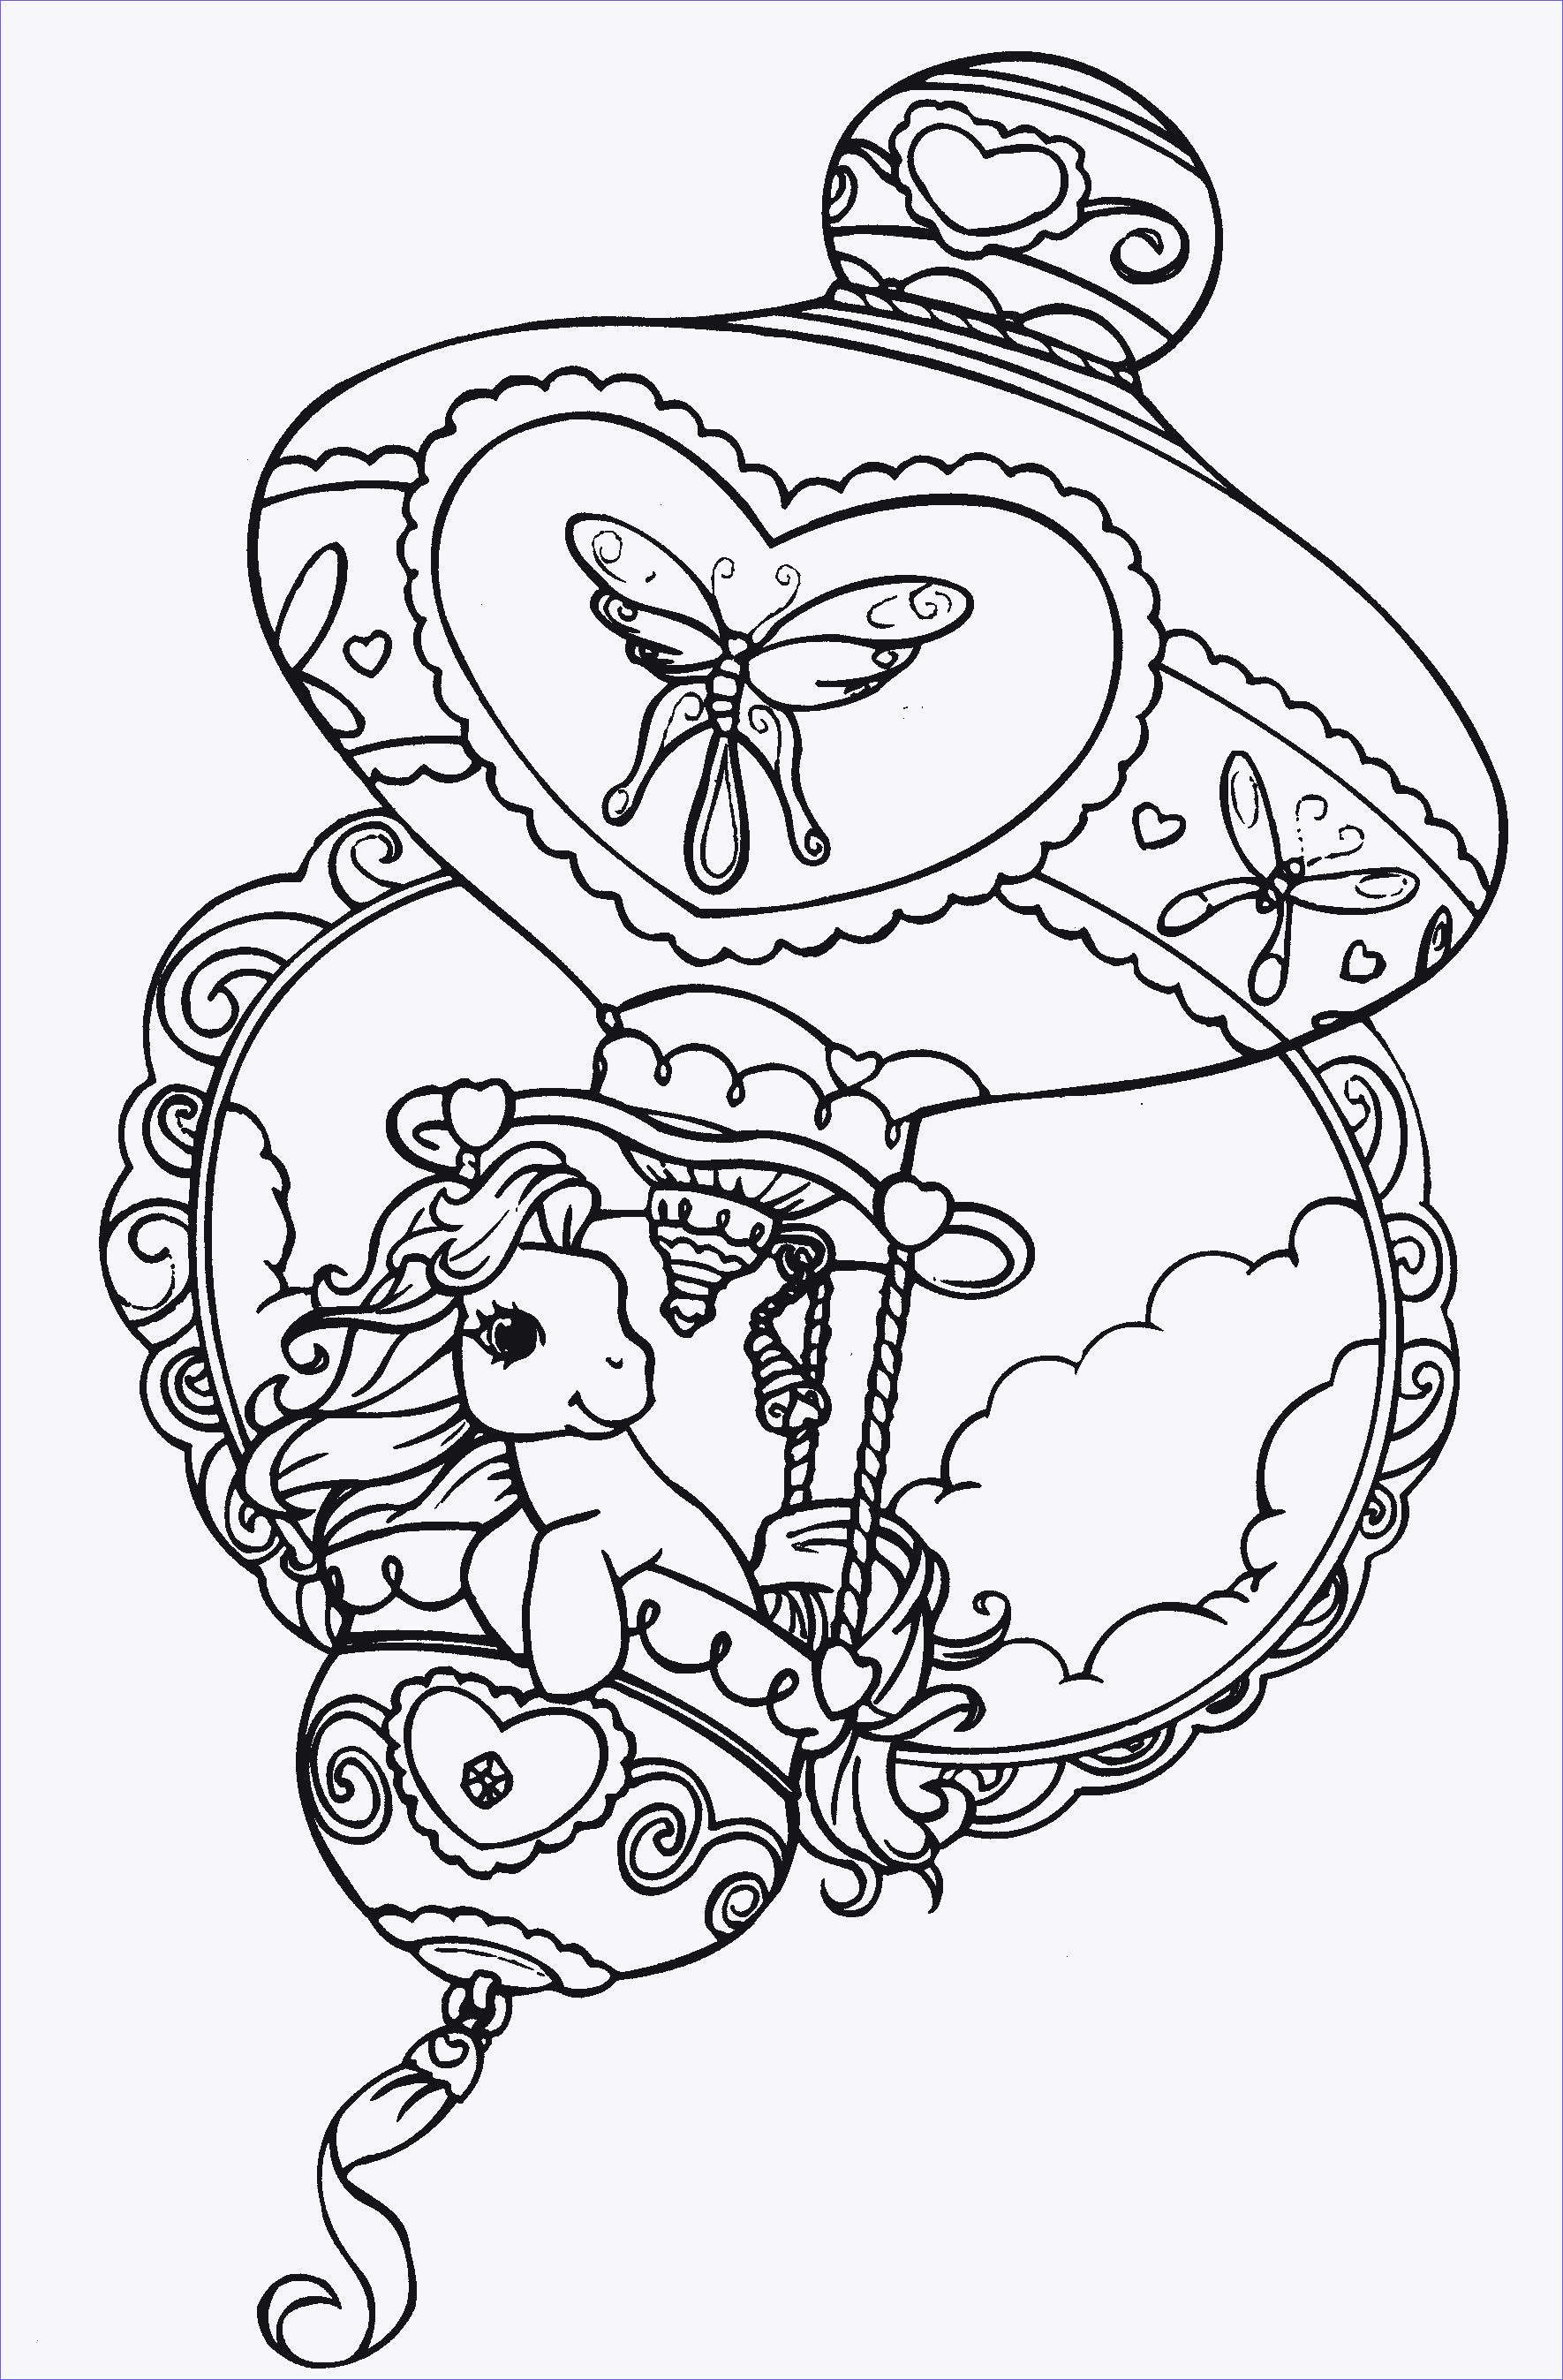 Malvorlagen My Little Pony Neu My Little Pony Coloring Pages Lovely Schön Ausmalbilder My Little Bild